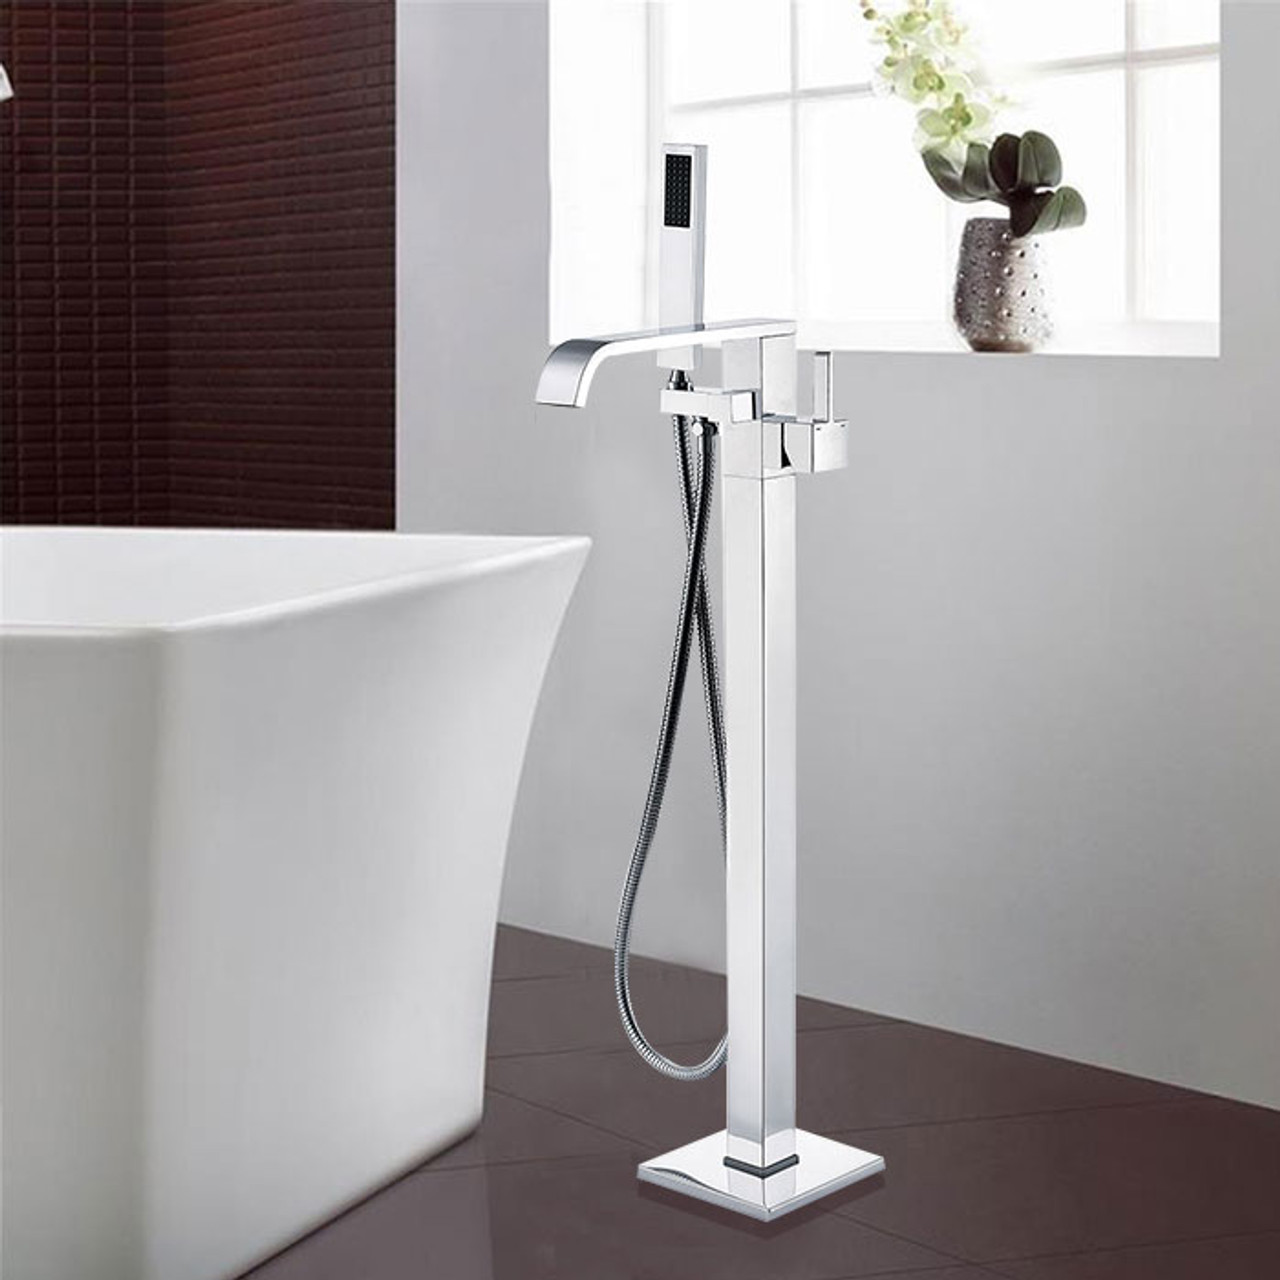 Picture of: Royal Fall Freestanding Tub Filler Faucet Chrome York Taps